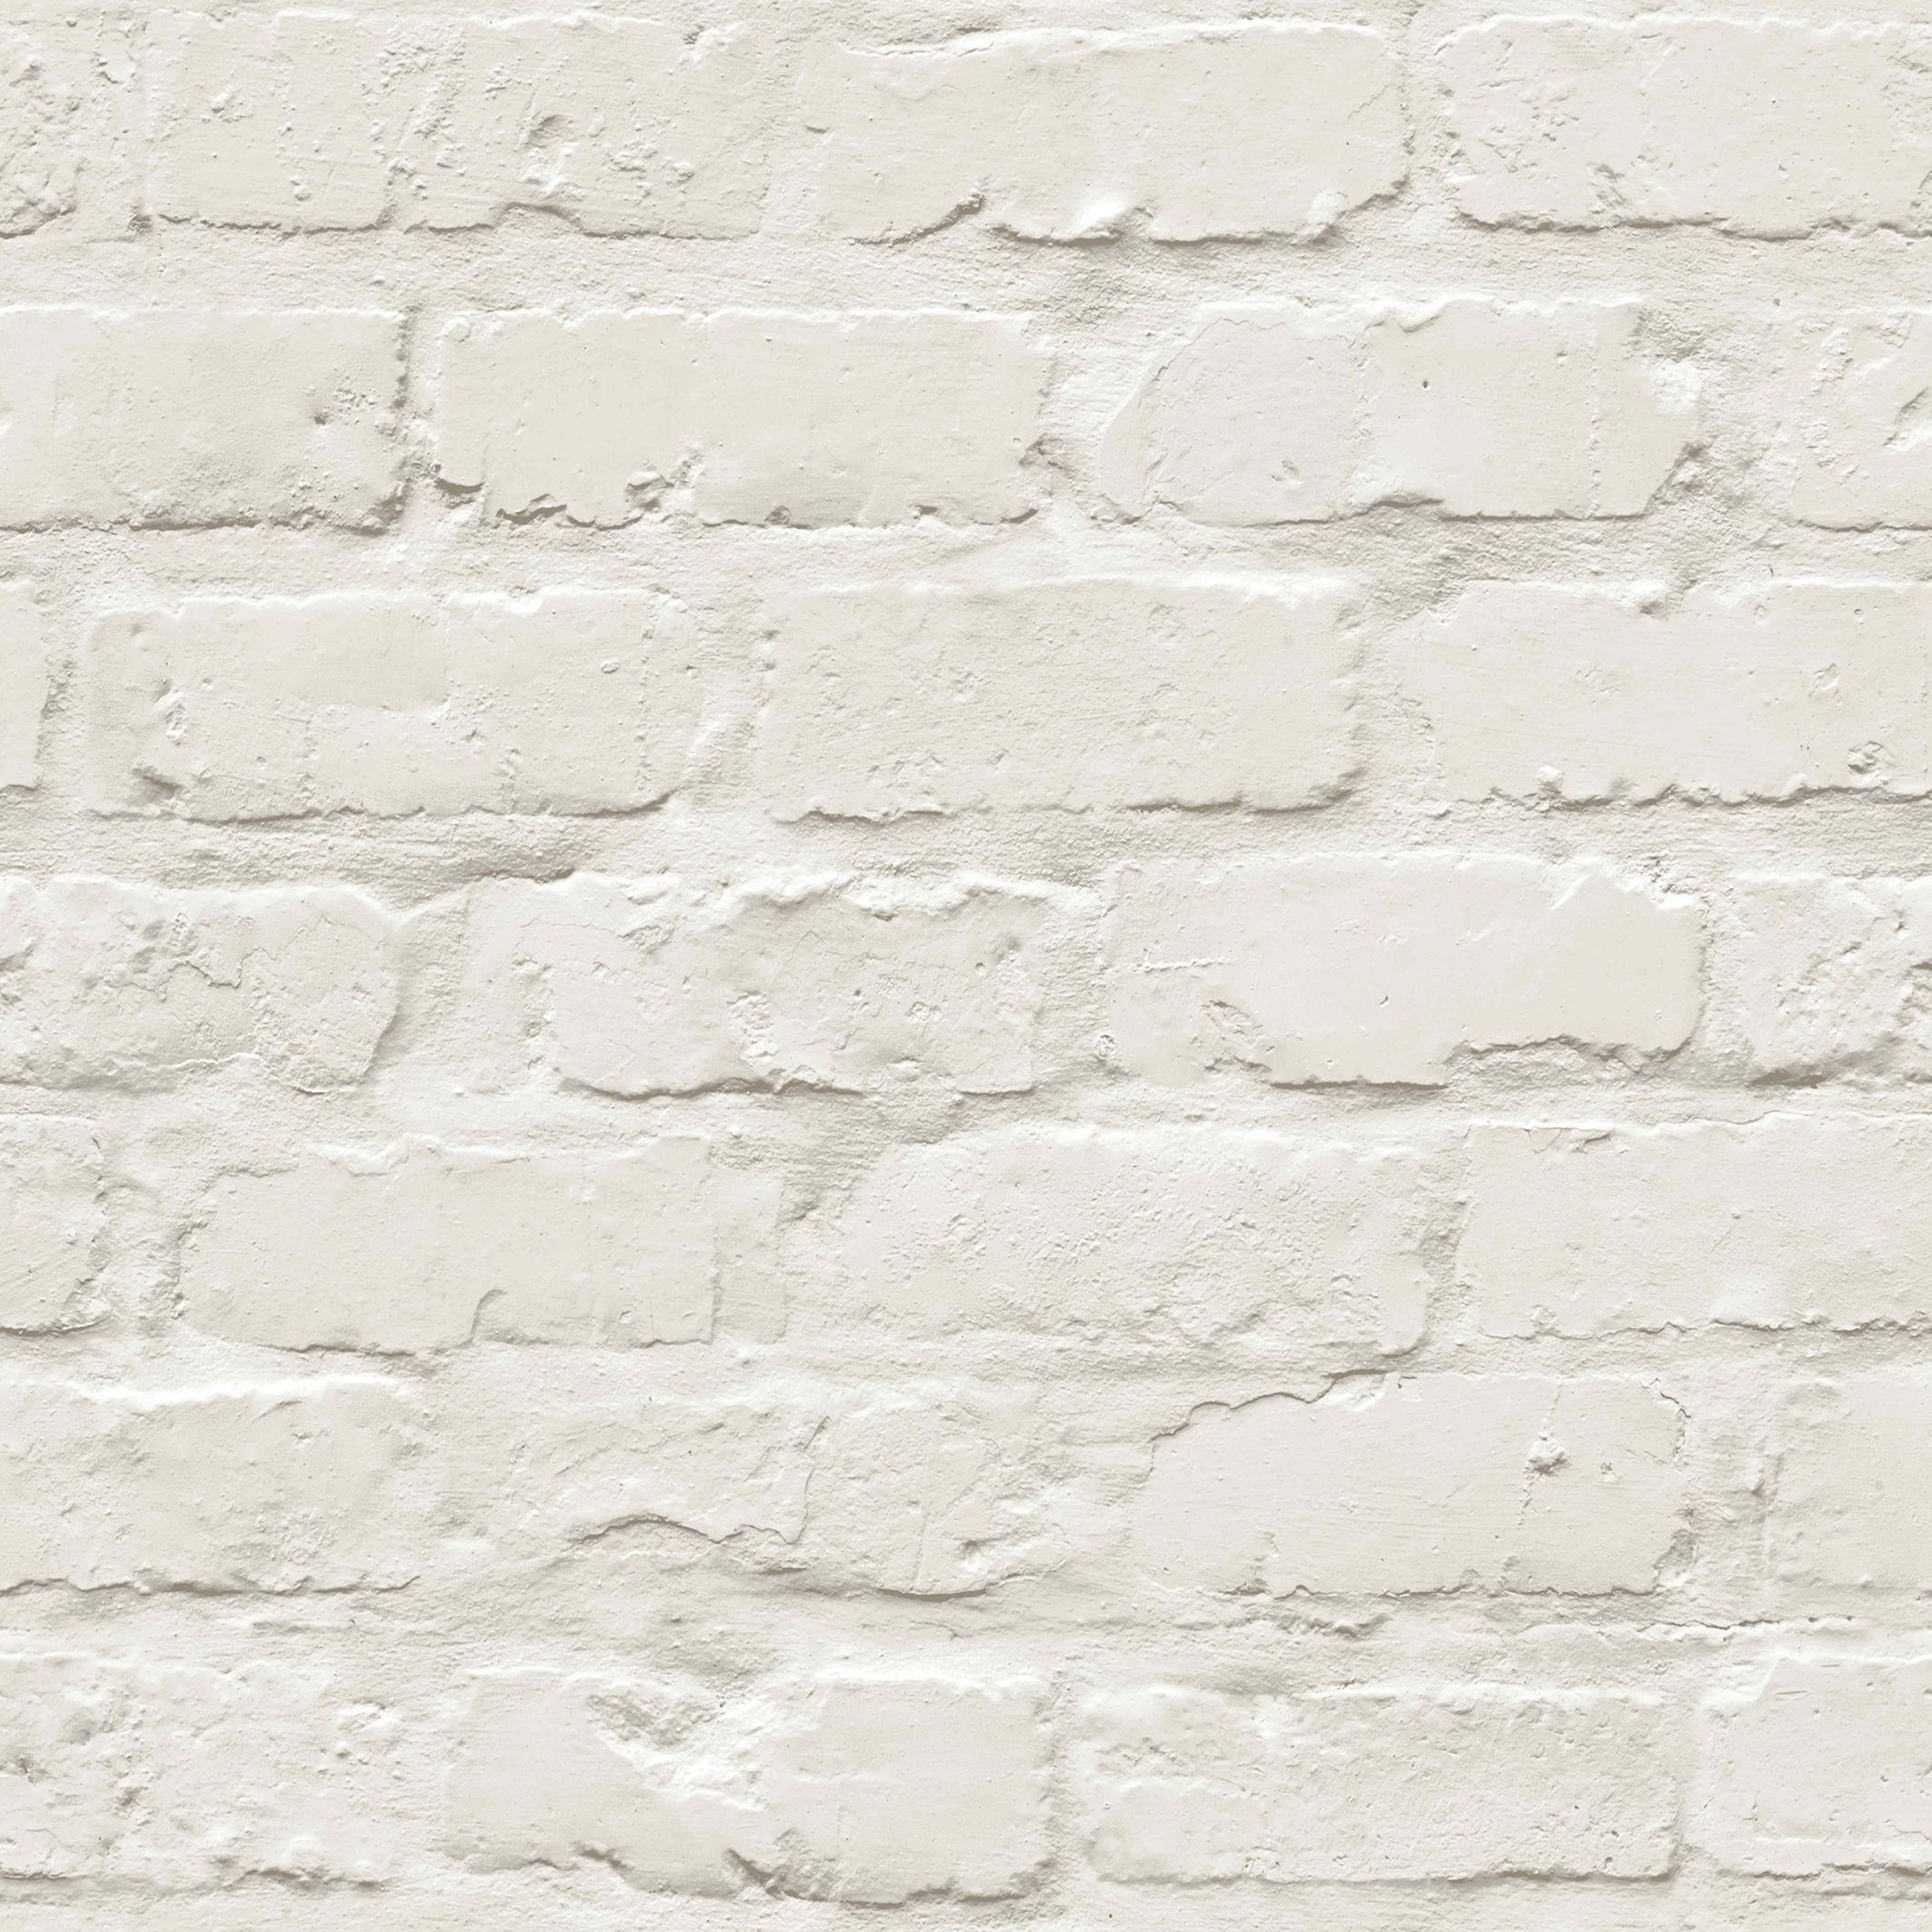 Buy 3d Wallpaper Panels White Brick Wallpaper 183 ① Download Free Awesome High